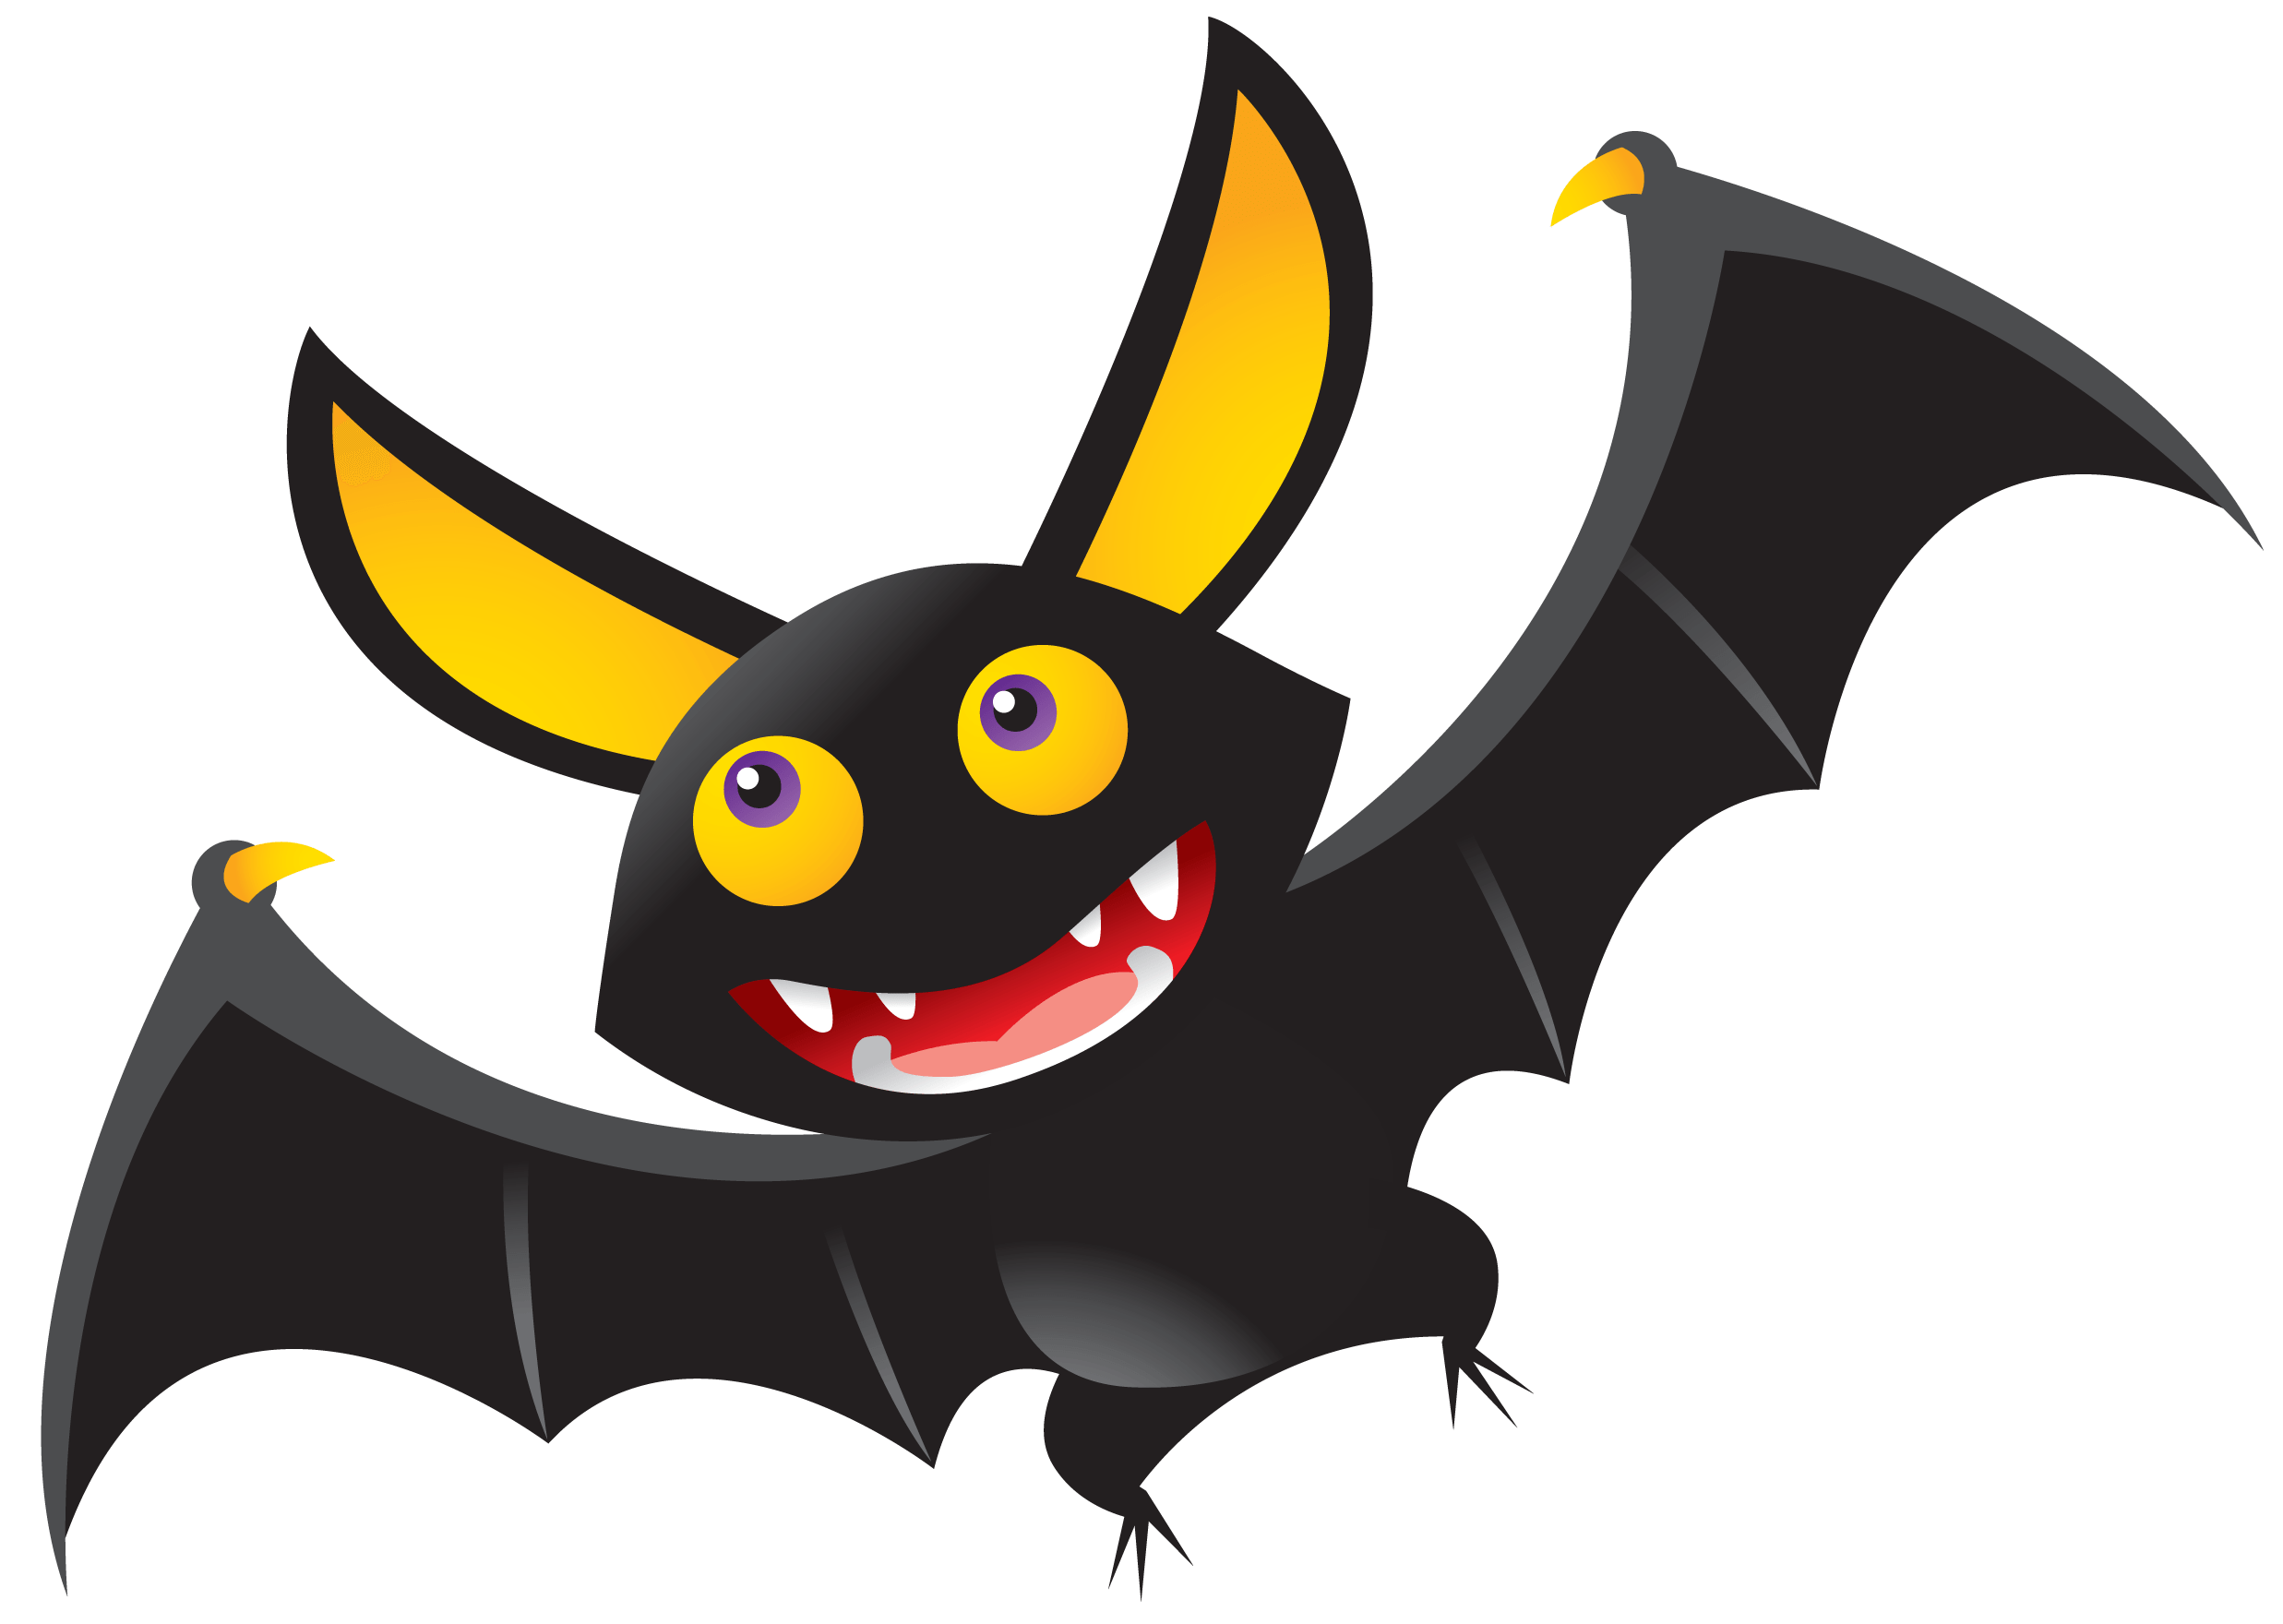 Halloween bat png. Illustration transparent stickpng